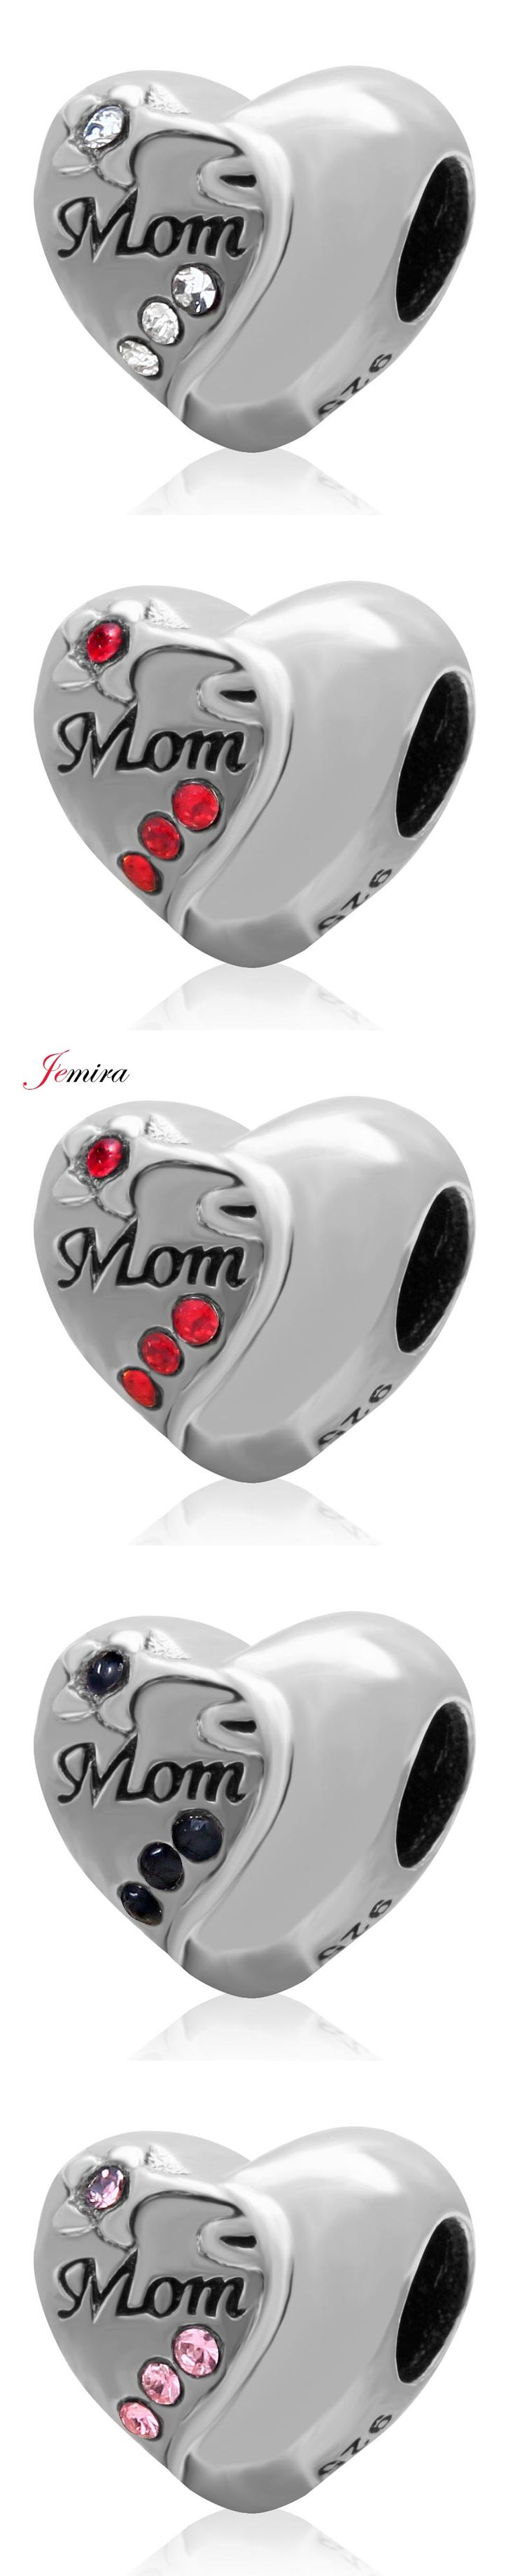 European 925 Sterling Silver Mom Heart Beads DIY Jewelry Making For Woman Pandora Style Charms Bracelets